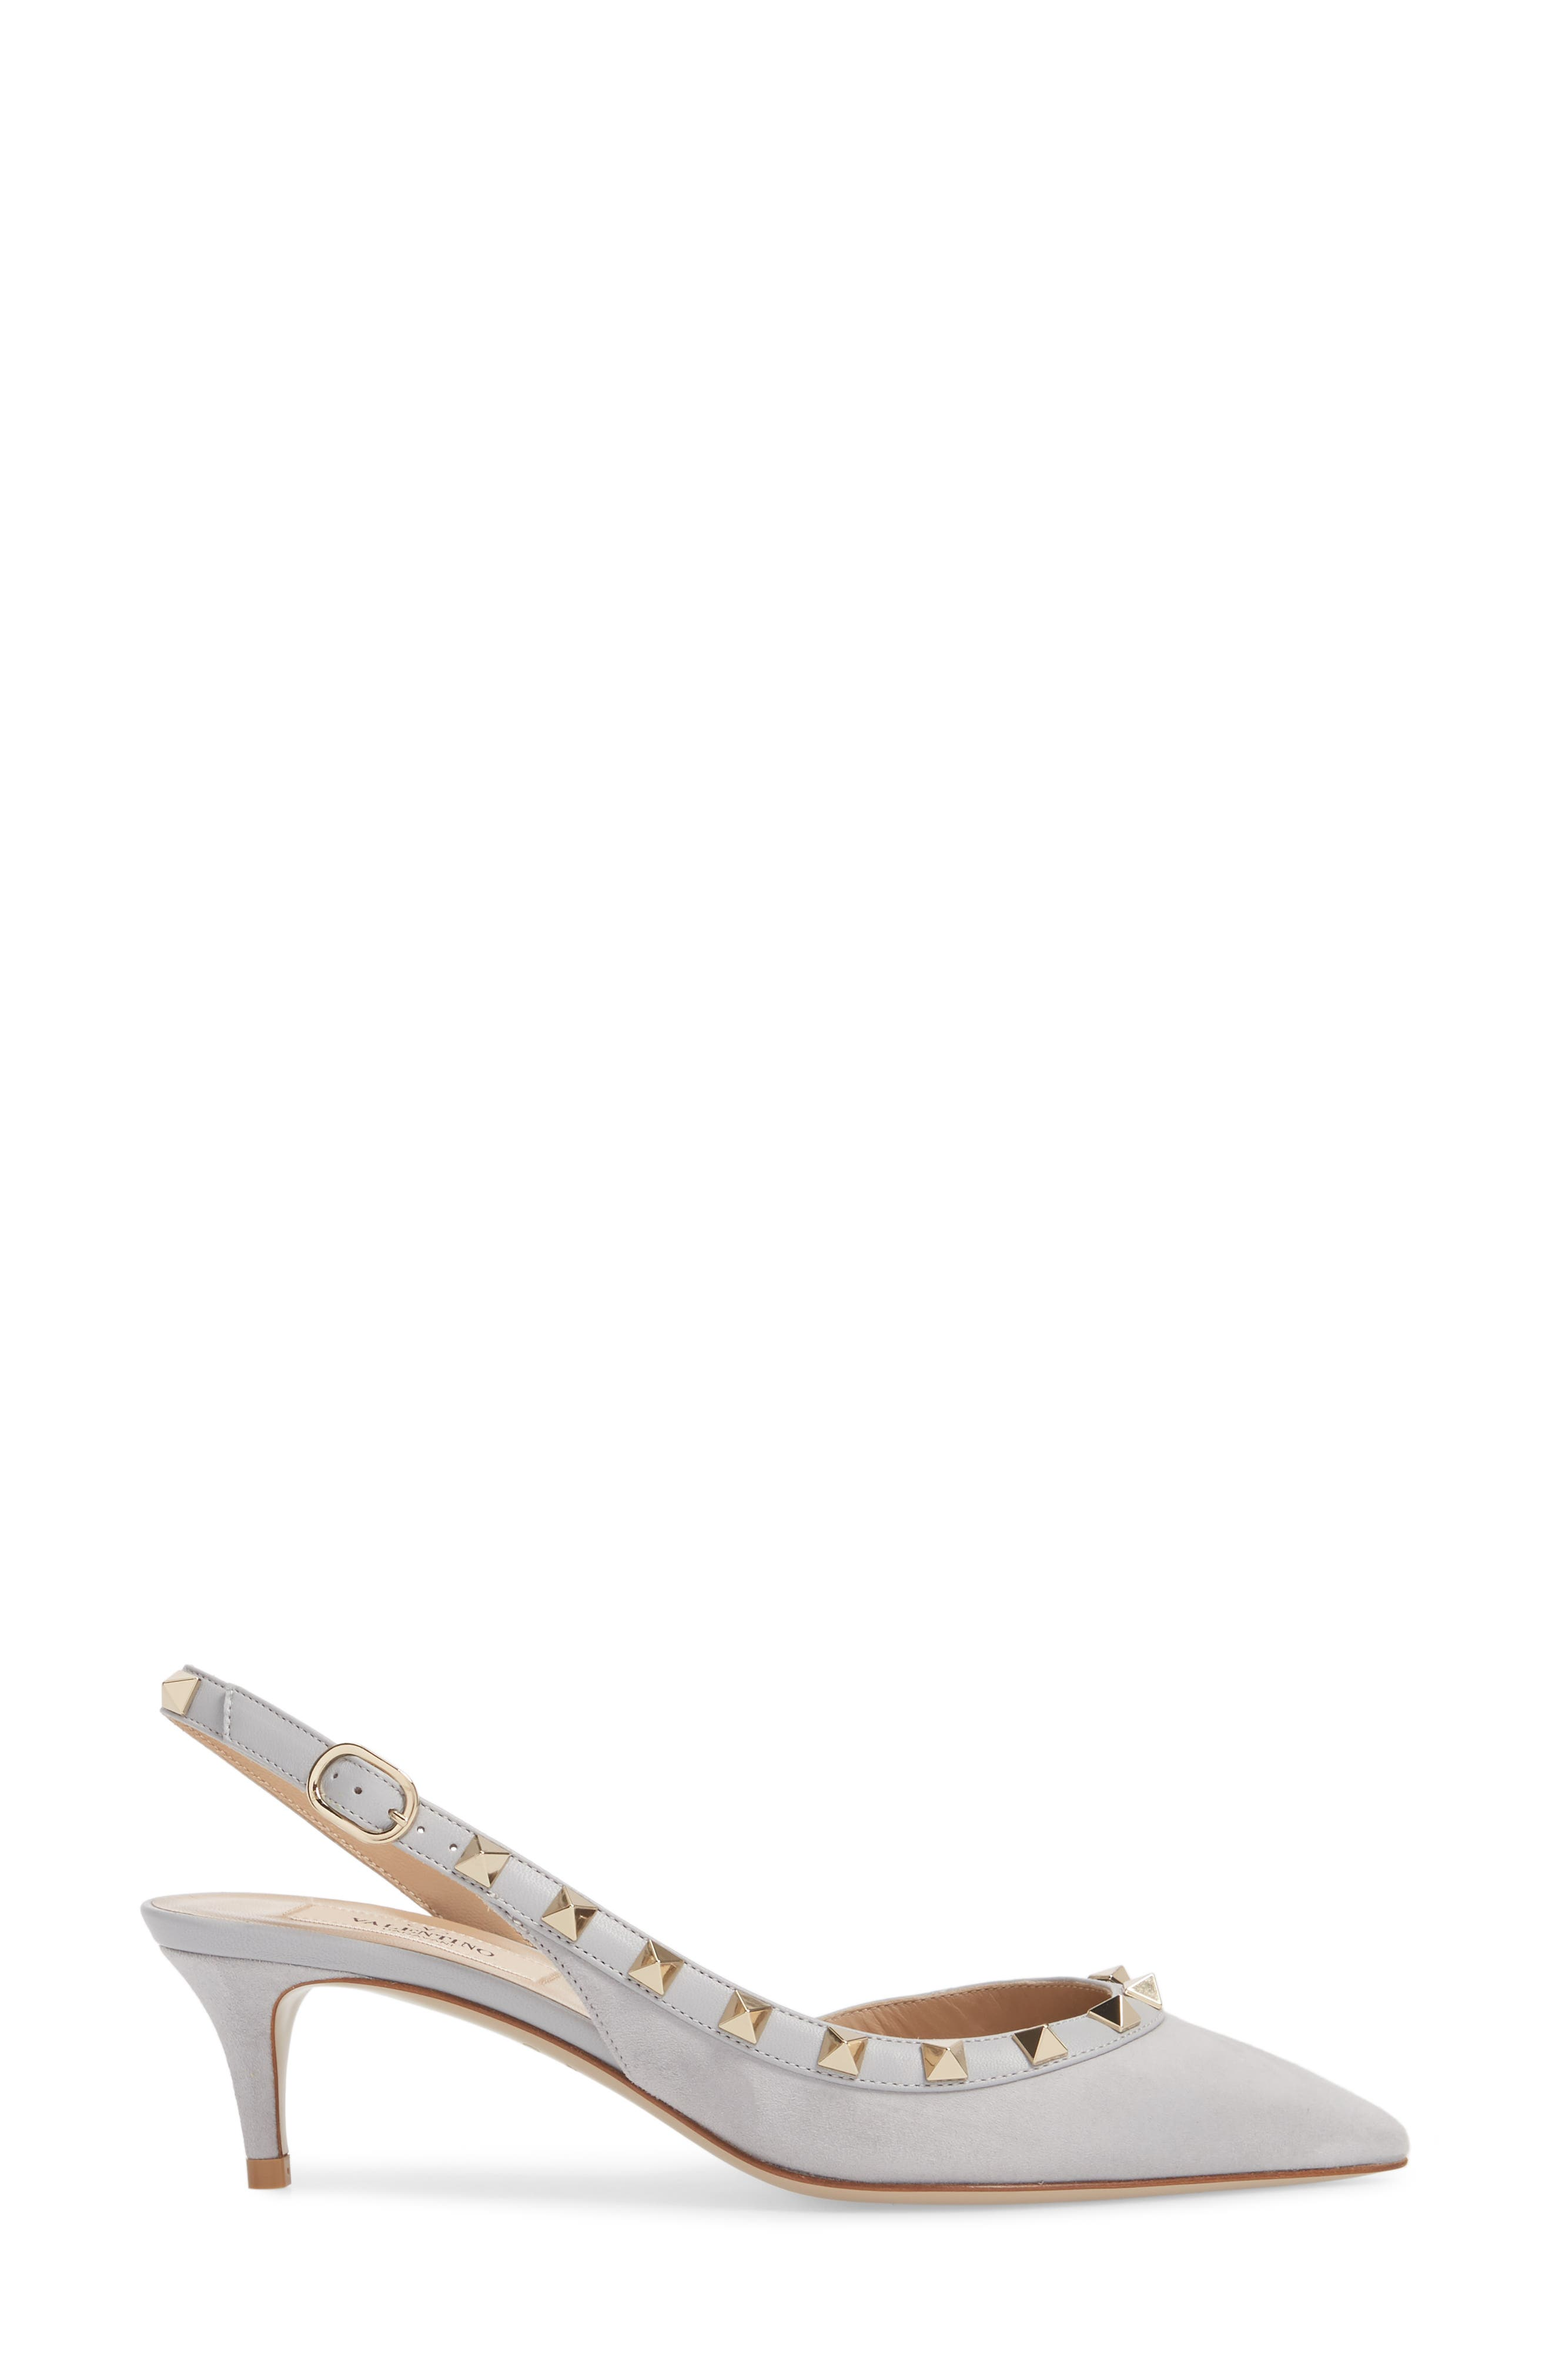 Rockstud Slingback Pump,                             Alternate thumbnail 3, color,                             Pastel Grey Suede